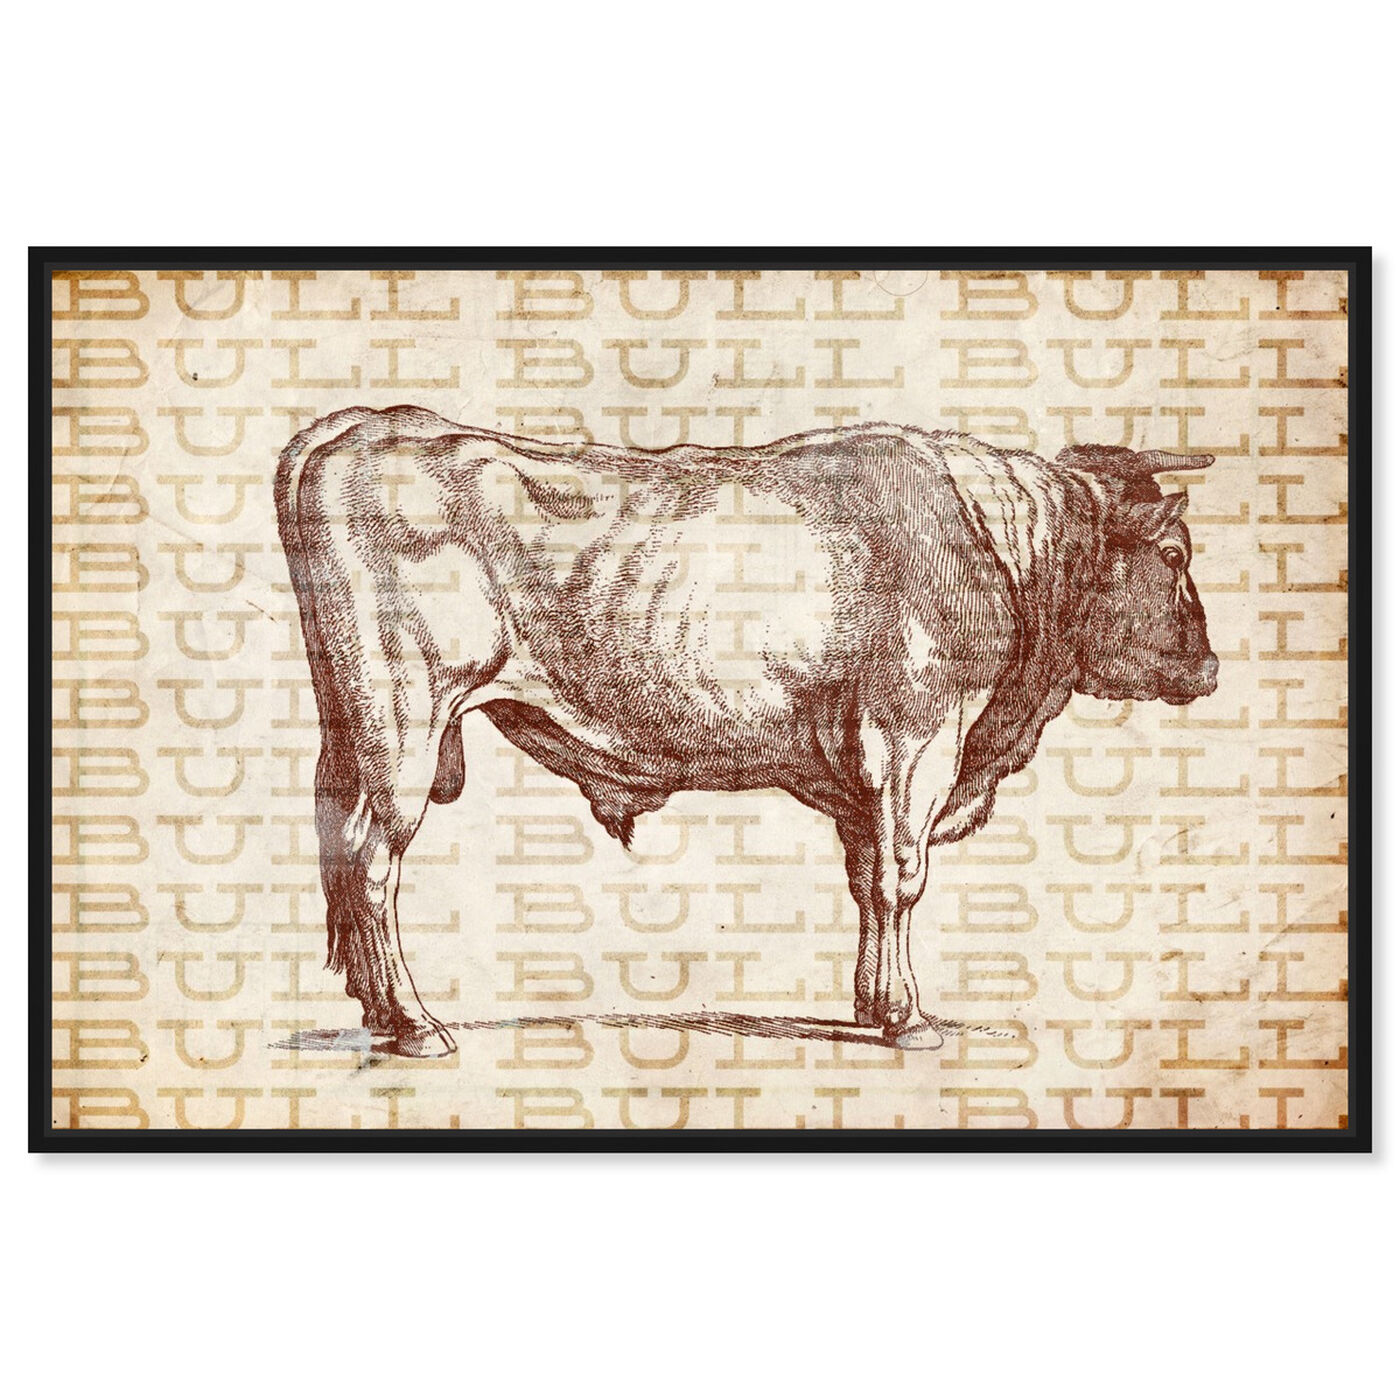 Front view of Bull featuring animals and farm animals art.